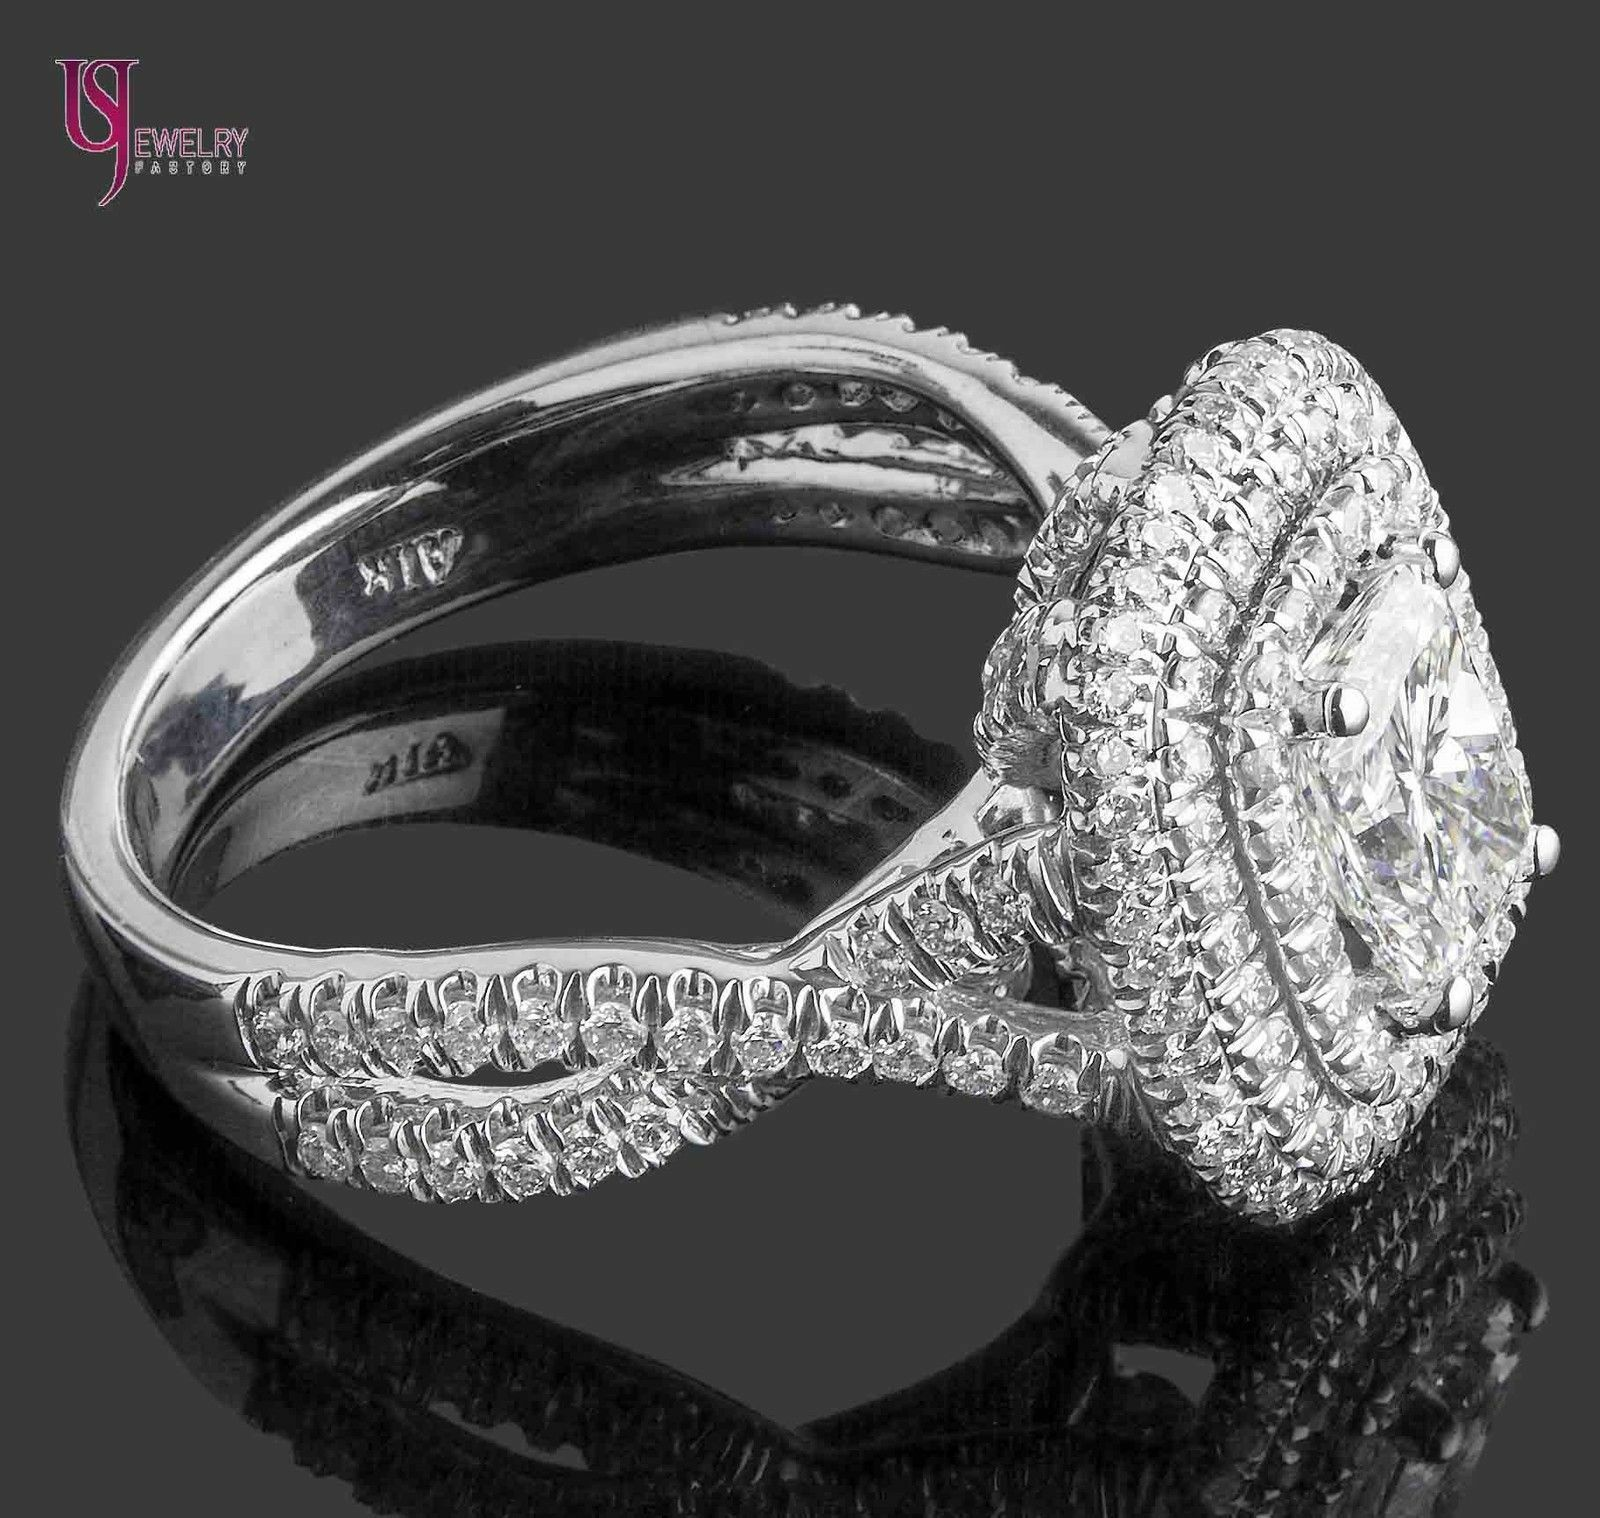 GIA Certified 2.18Ct F-SI1 Radiant Cut Diamond Engagement Infinity Ring 18k Gold 10